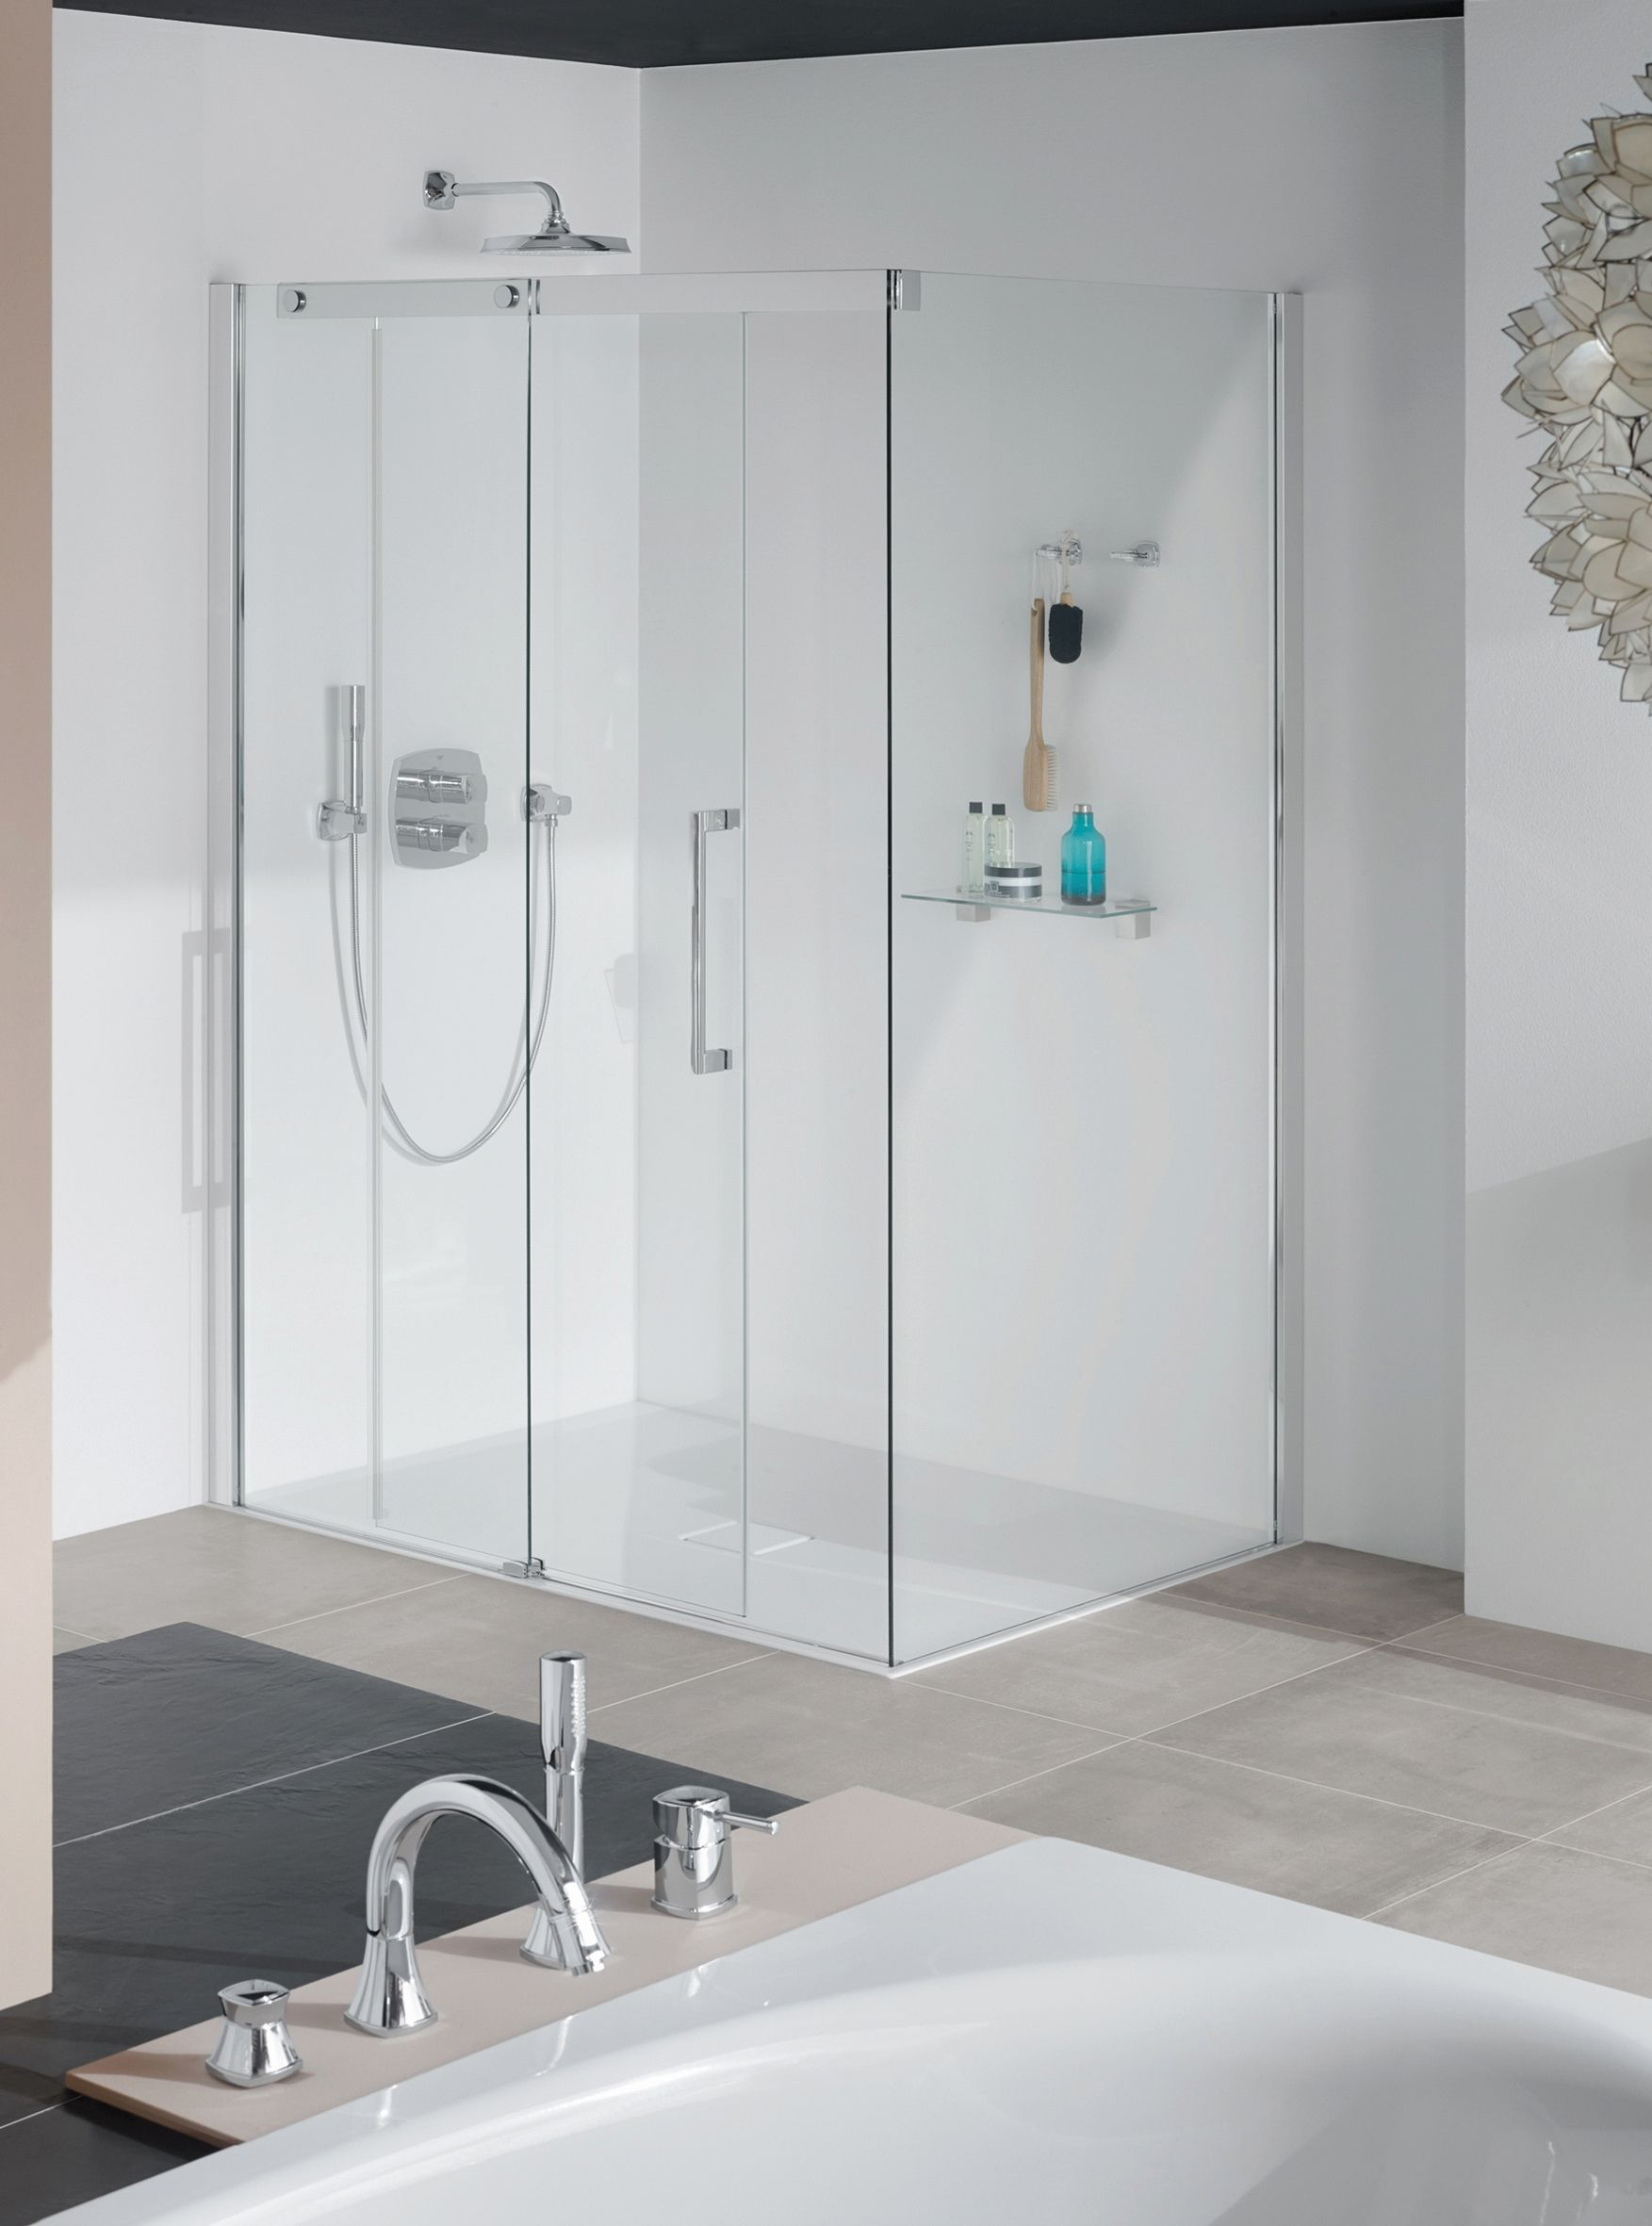 Aquatherm Black System Dusche Badideen Bathroom Und Bathtub